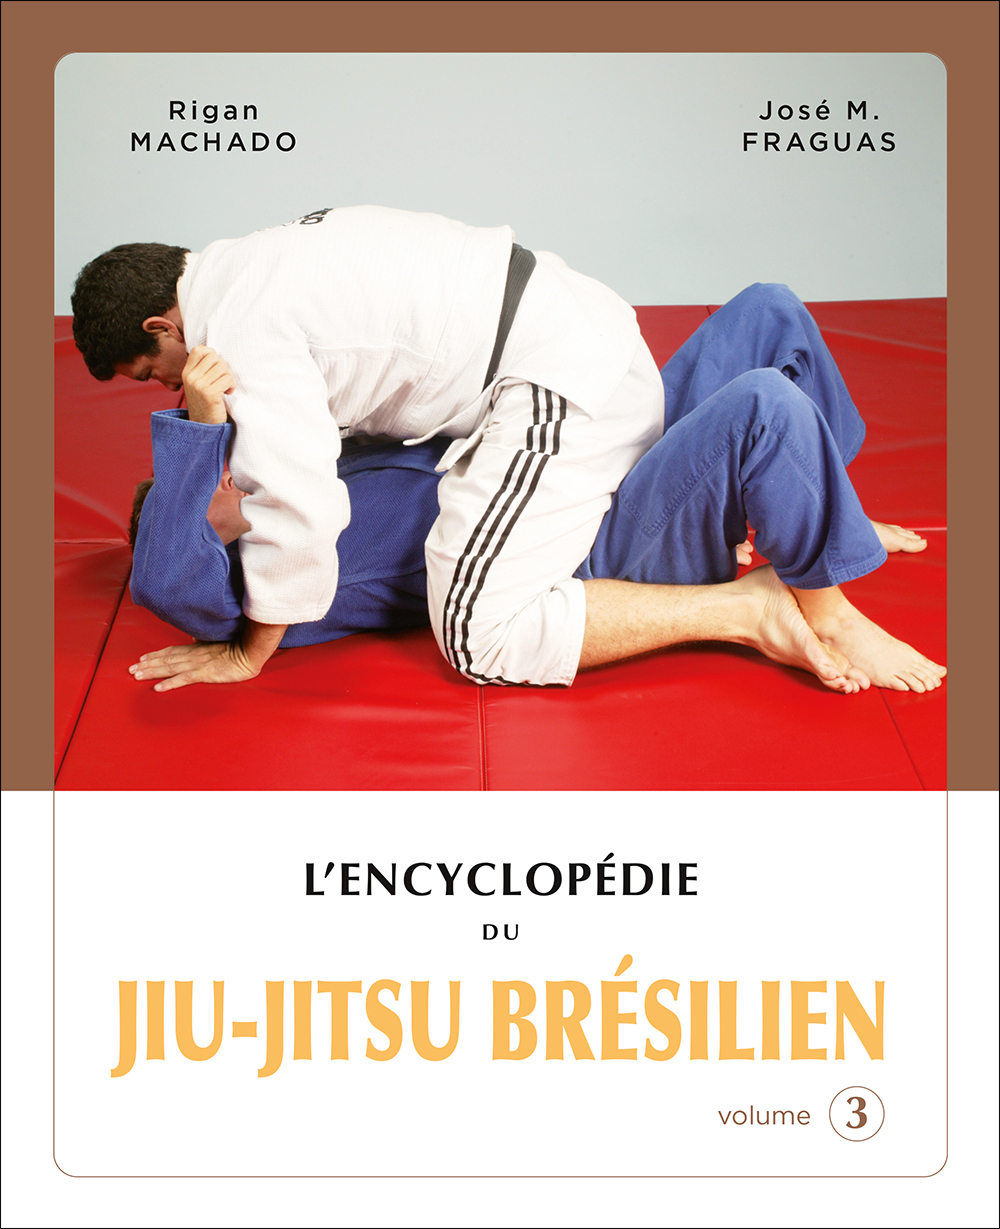 ENCYCLOPEDIE DU JIU-JITSU BRESILIEN, volume 3